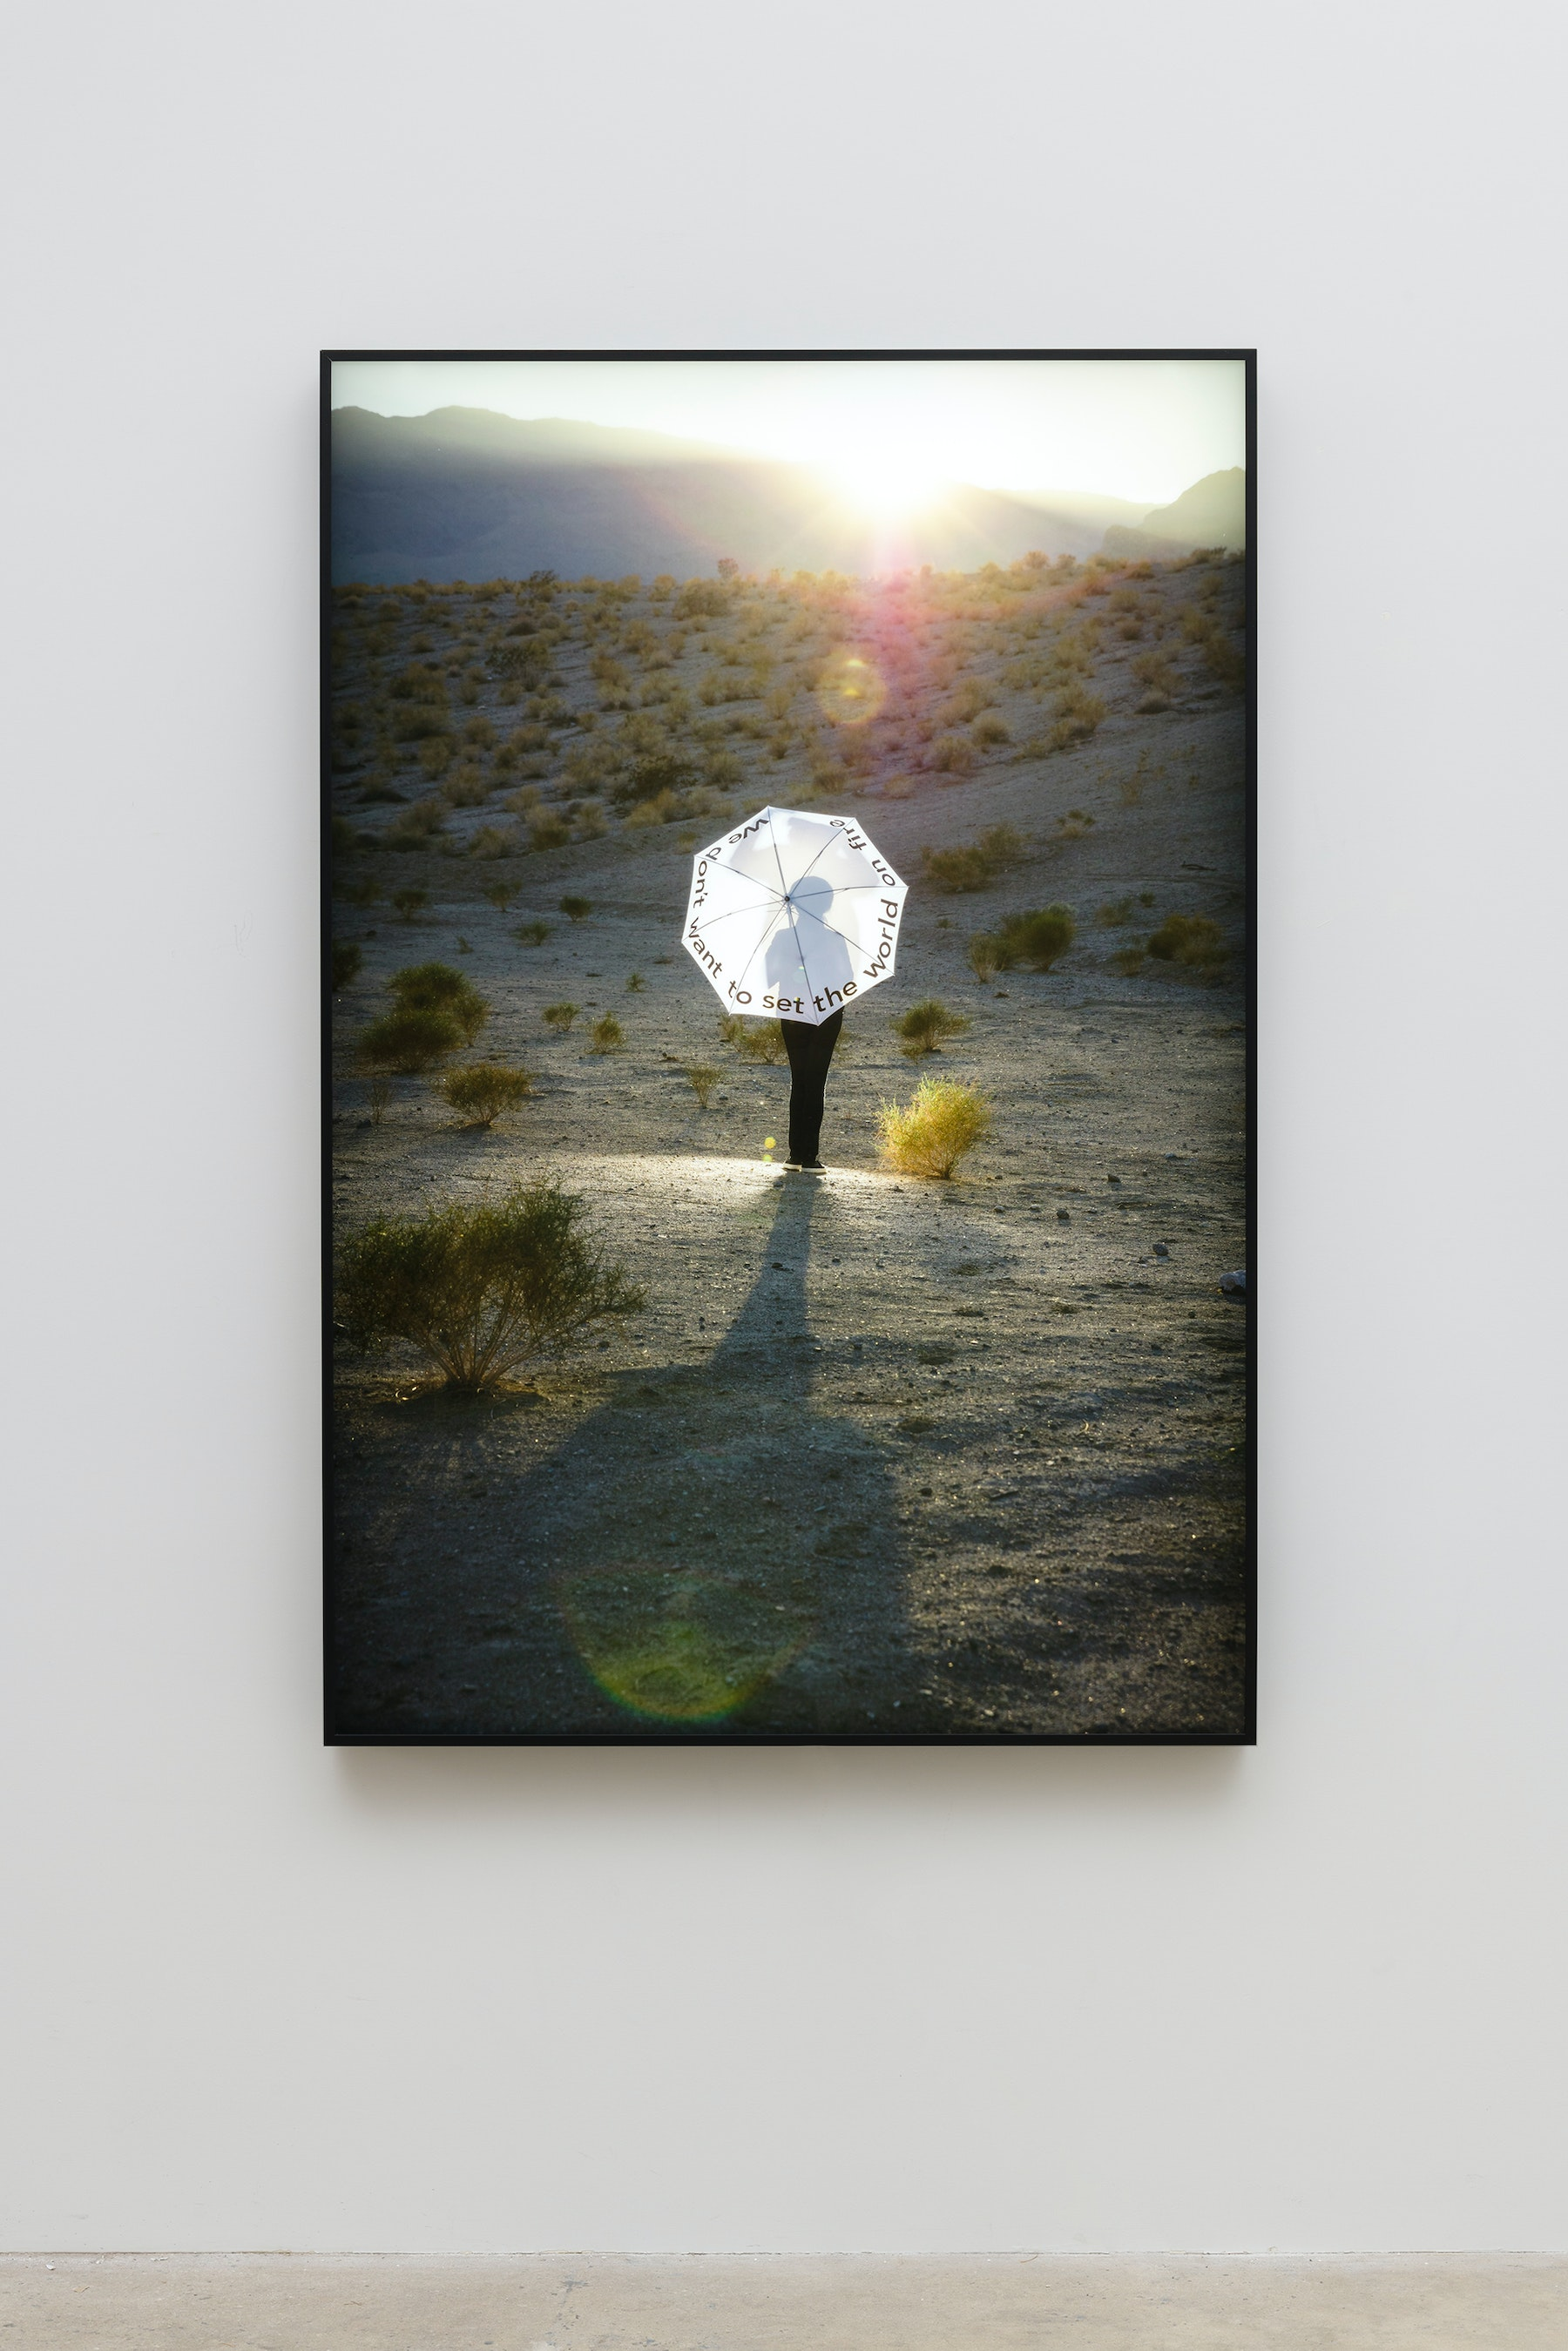 """Mary Kelly """"We don't want to set the world on fire,"""" 2019 Duratran mounted on1/4 inch acryilc, powder coated aluminum LED light box 67.875 x 45.375 x 2.75"""" [HxWxD] (172.4 x 115.25 x 6.98 cm) Edition 1 of 2, 1 AP Inventory #KEL159.01 Courtesy of the artist and Vielmetter Los Angeles Photo credit: Jeff McLane"""